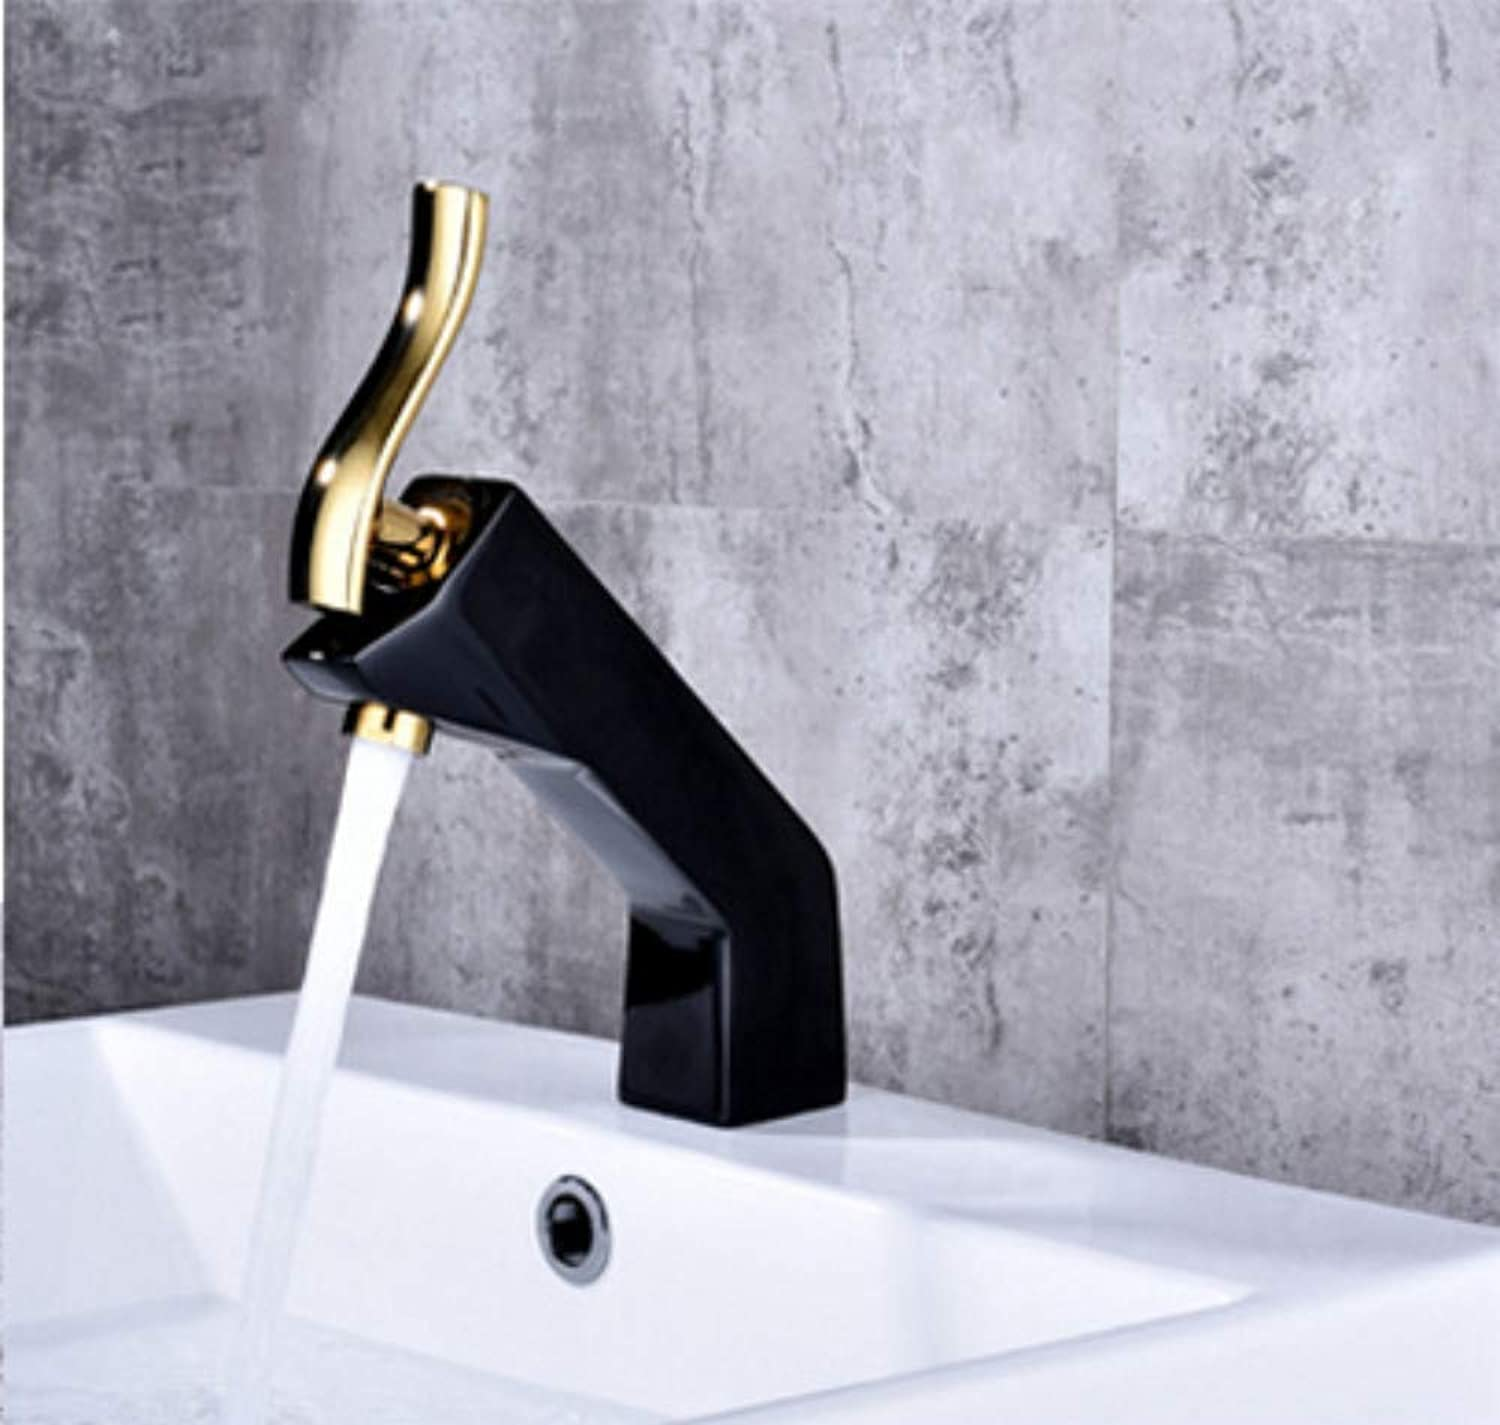 Basin Faucets Modern Bathroom Mixer Tap Brass Washbasin Faucet Single Handle Single Hole Elegant Crane for Bathroom Basin Crane